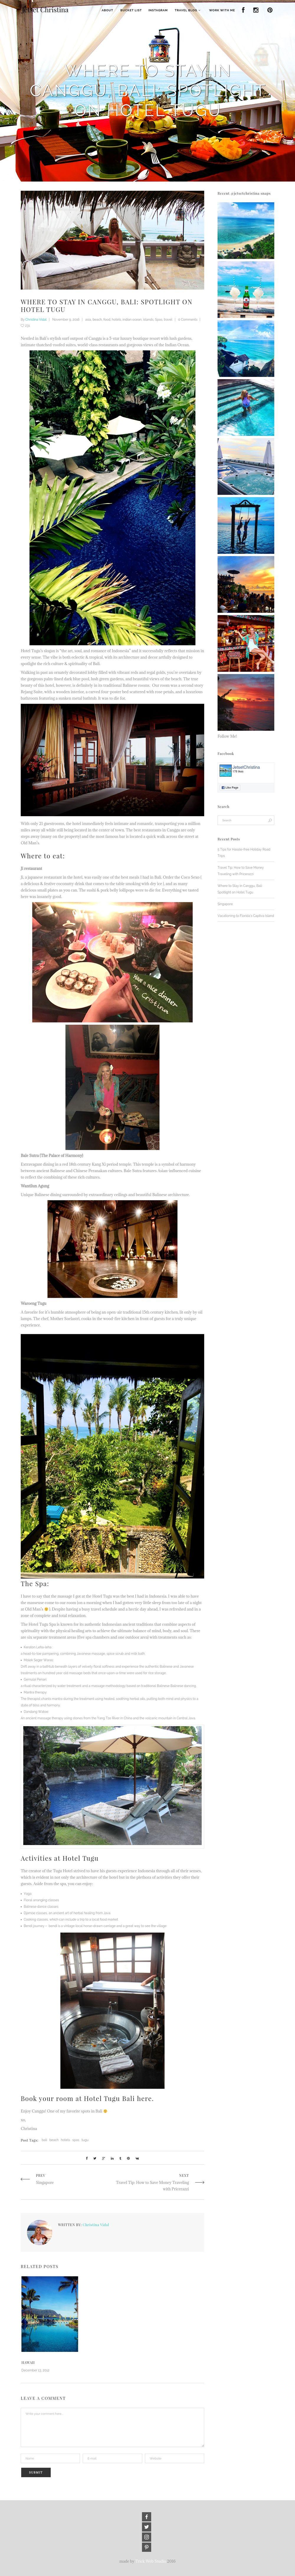 where-to-stay-in-canggu-bali-spotlight-on-hotel-tugu-jetsetchristina-com